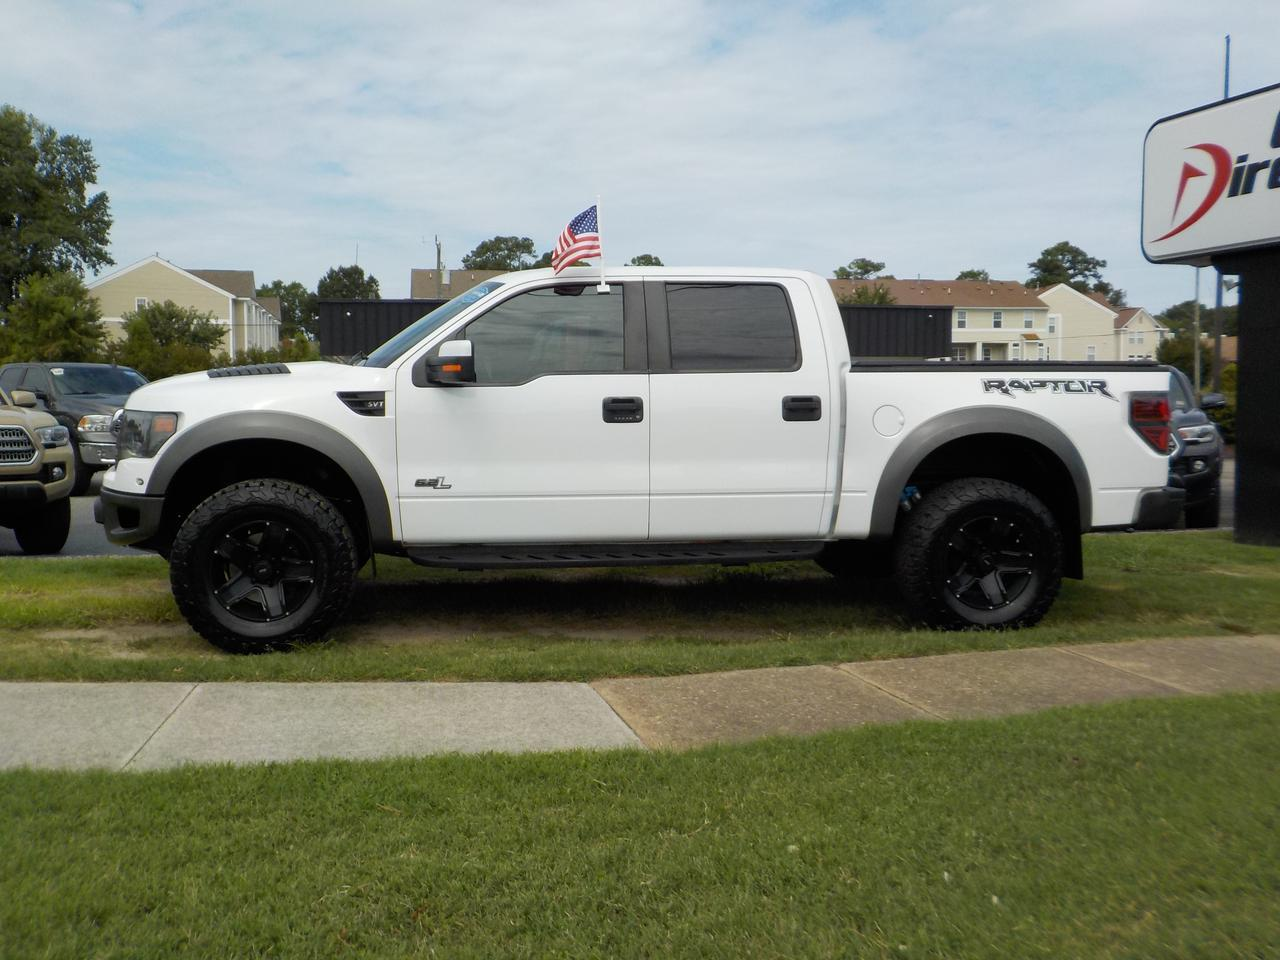 2013 FORD F-150 SVT RAPTOR SUPERCREW 4X4, LEATHER, NAV, HEATED/COOLED SEATS, BLUETOOTH, REMOTE START! Virginia Beach VA